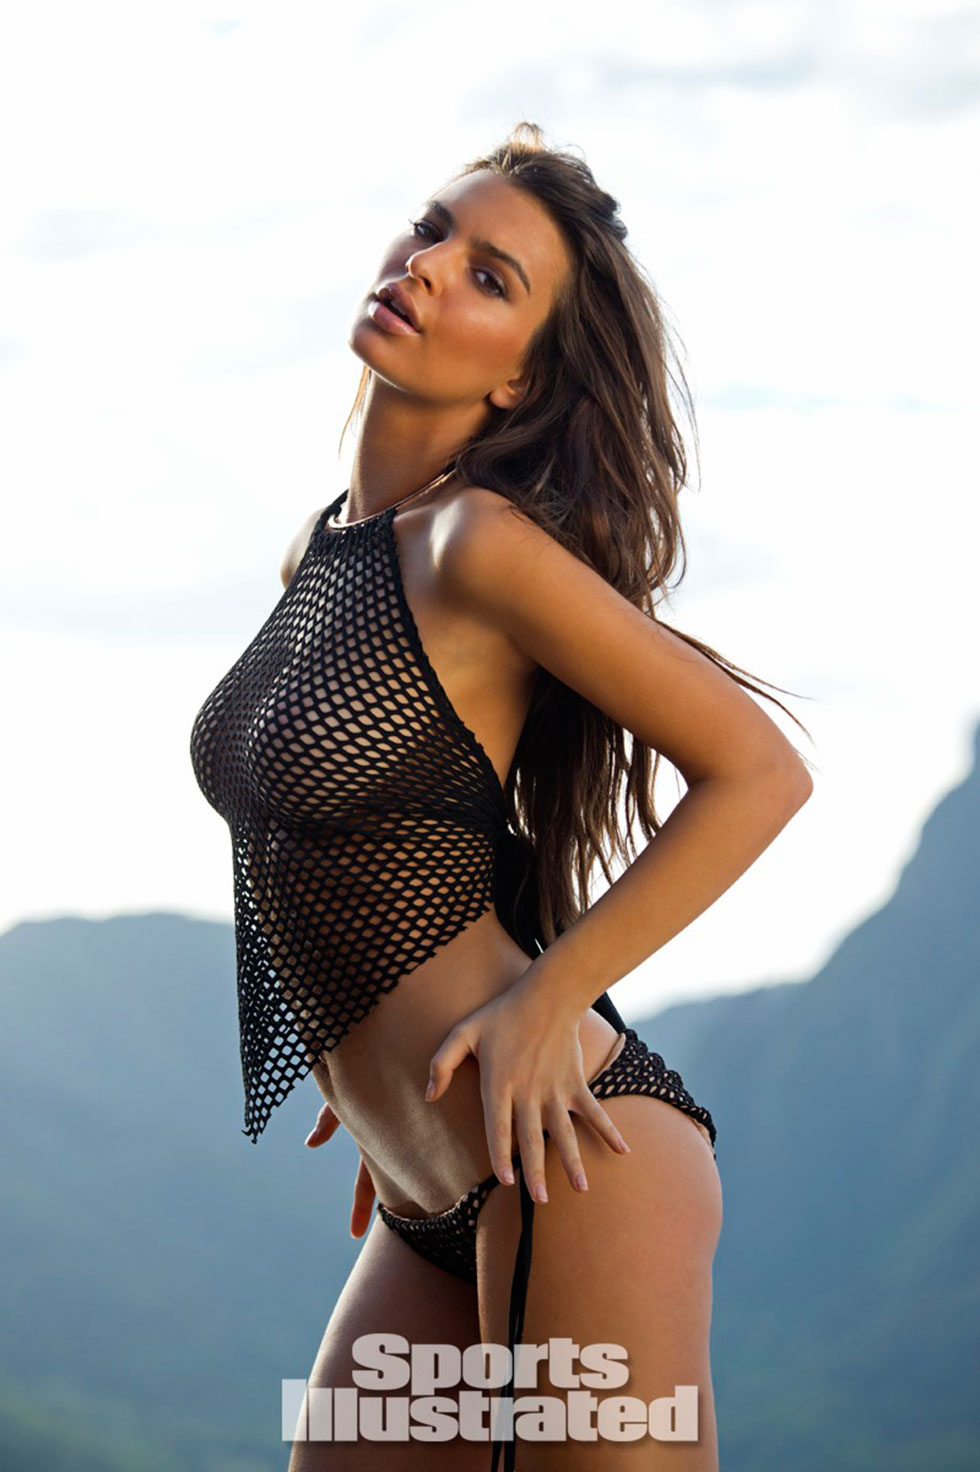 Emily-Ratajkowski-for-Sports-Illustrated-Swimsuit-Edition-2014_13